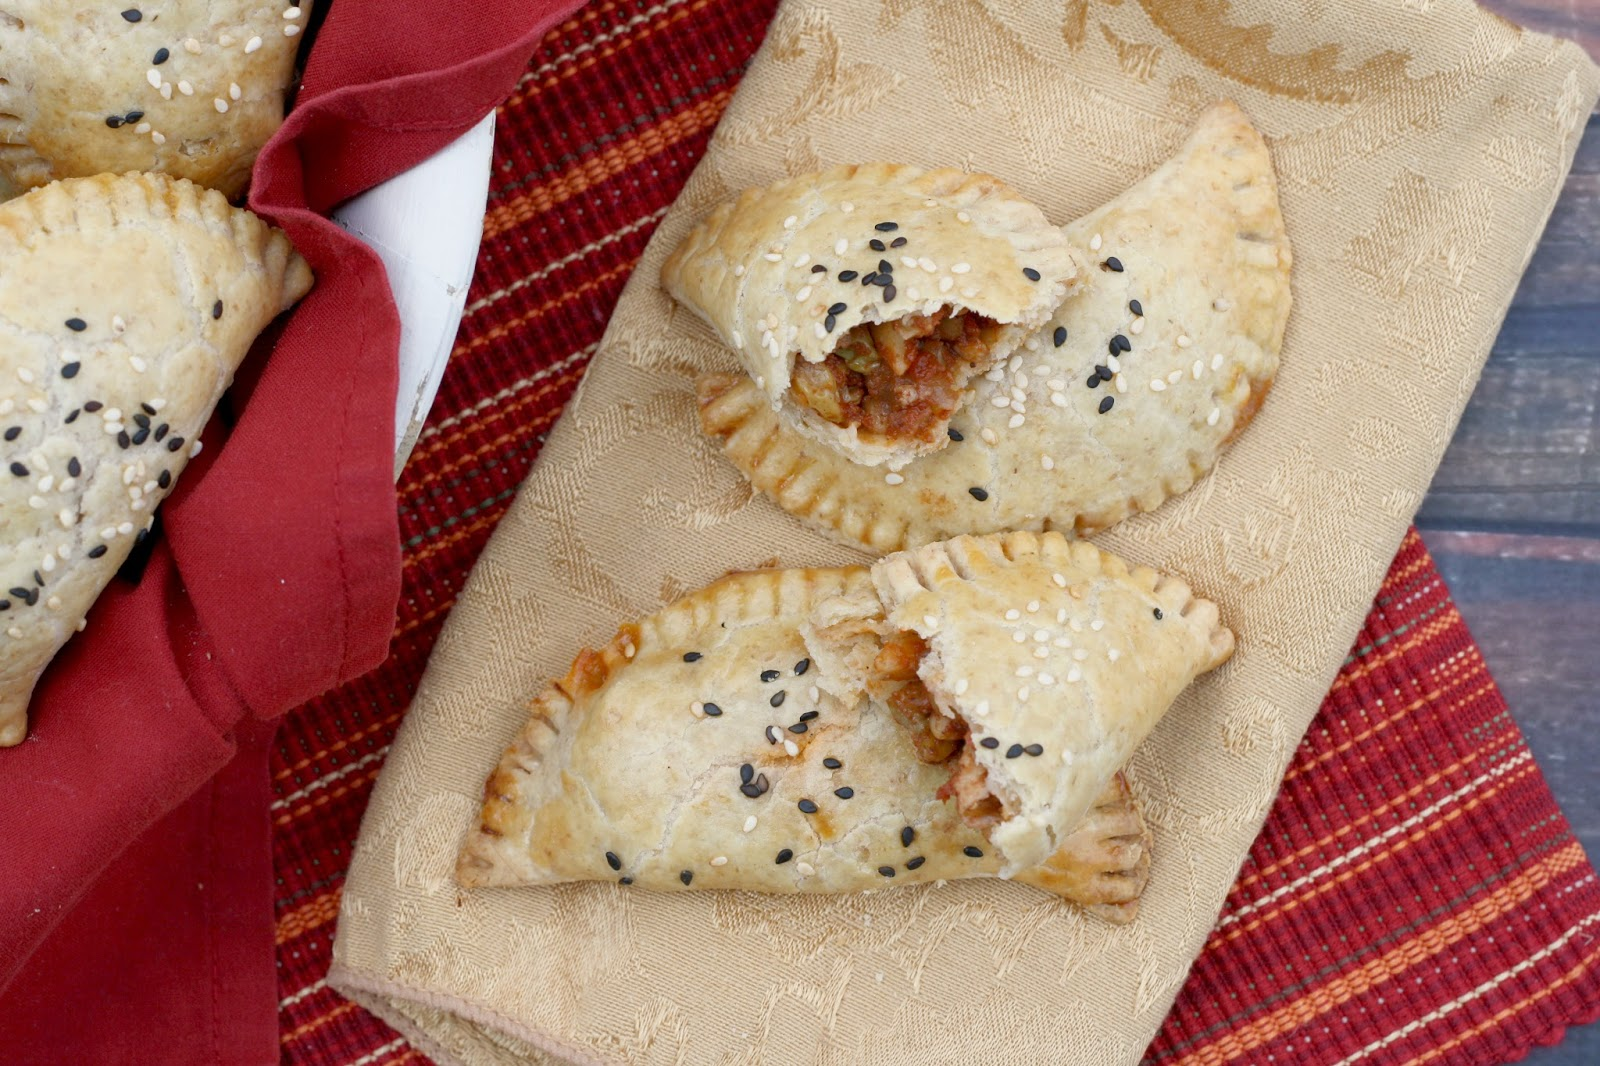 Chicken and Farro Whole Grain Empanadas - making the switch for #WholeGrainsMonth via @girlichef